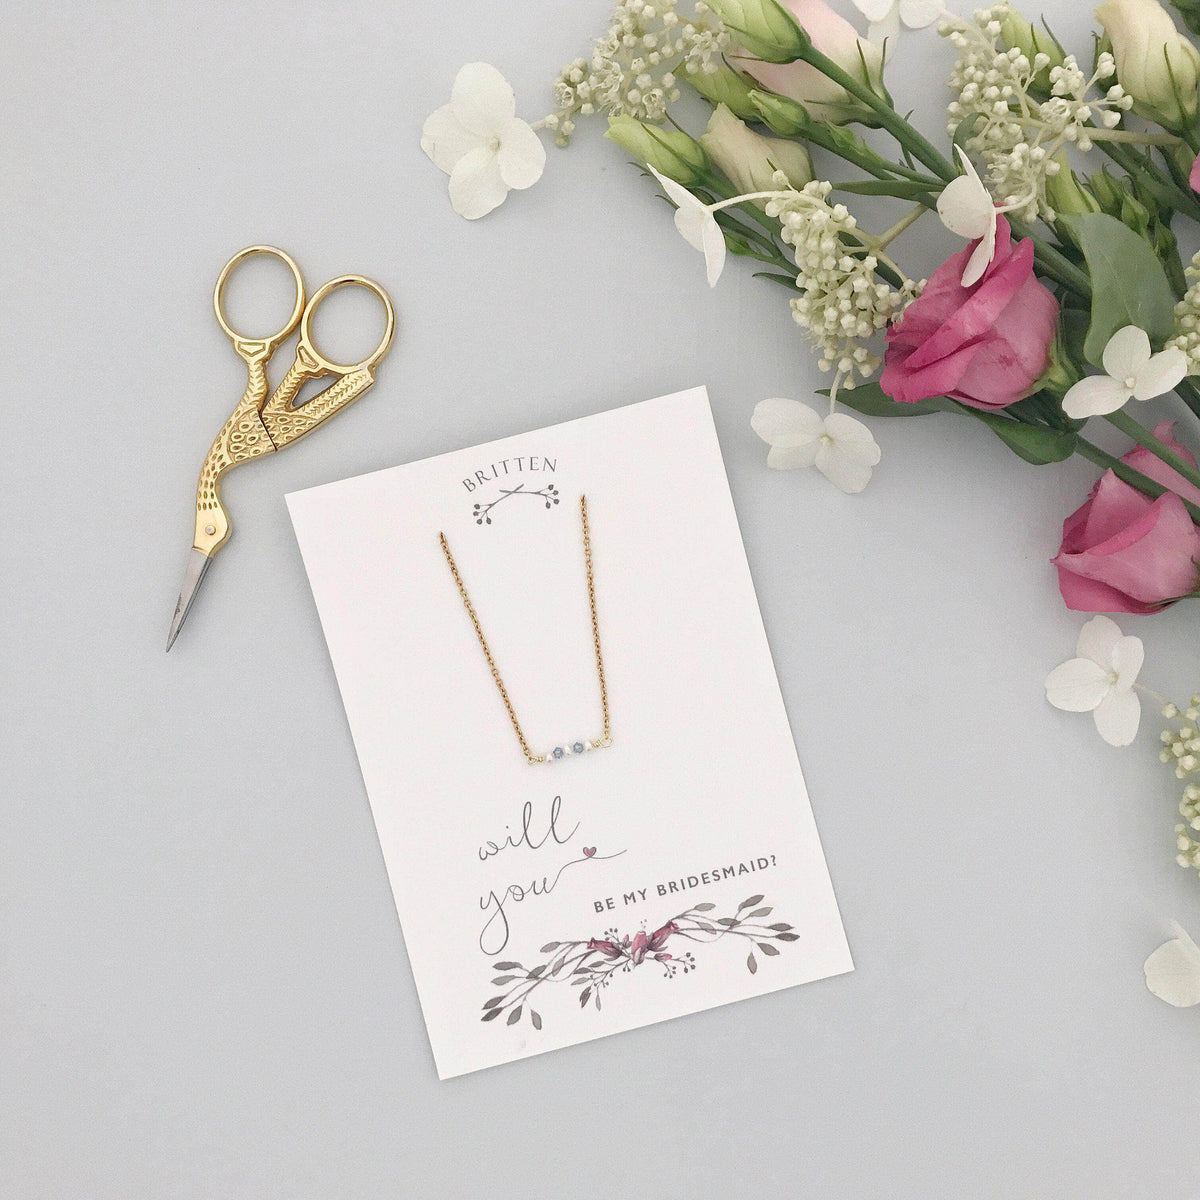 Bridesmaid Gift Gold Will you be my bridesmaid gift bracelet - 'Mollie' in gold